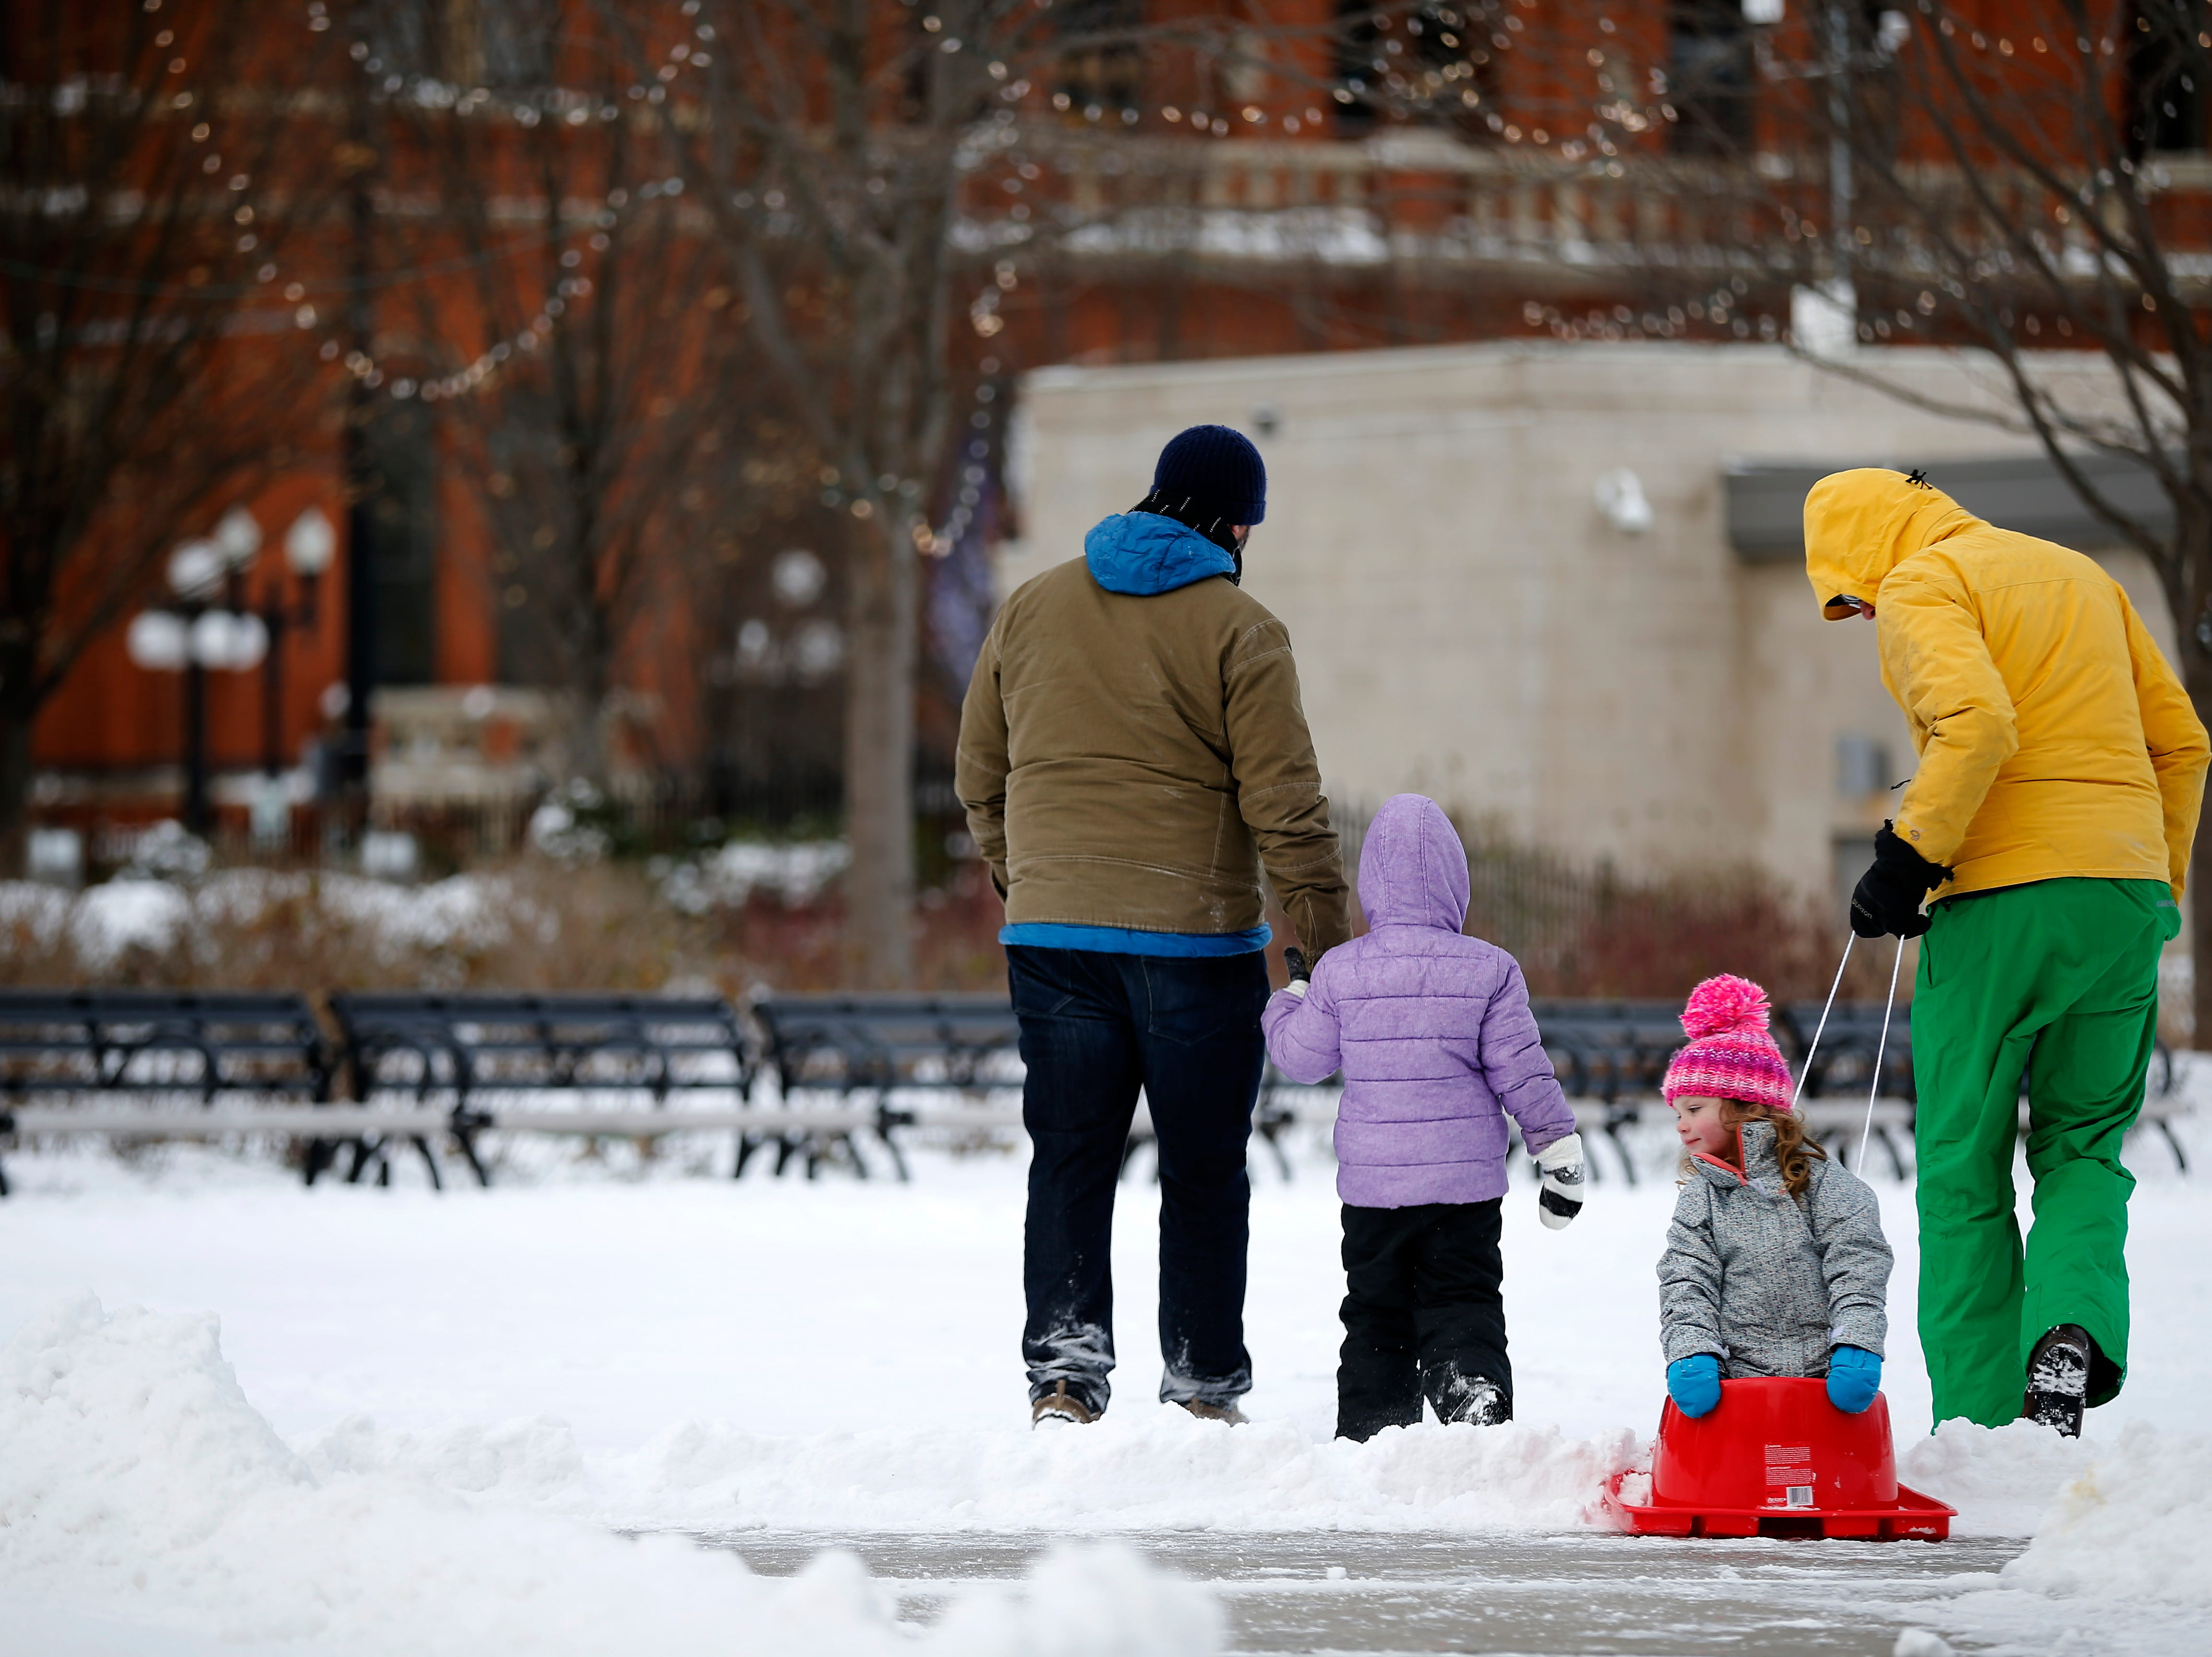 Henri Hudson, 3, trails behind as she's pulled on a sled by her father Scott Hudson, of Over-the-Rhine, as they head home after playing with Naomi Henderson, 5, and her dad Steve Smith at Washington Park in the Over-the-Rhine neighborhood of Cincinnati on Sunday, Jan. 20, 2019. Temperatures remain below 15 degrees with windchills as low as 4 in the region Sunday.